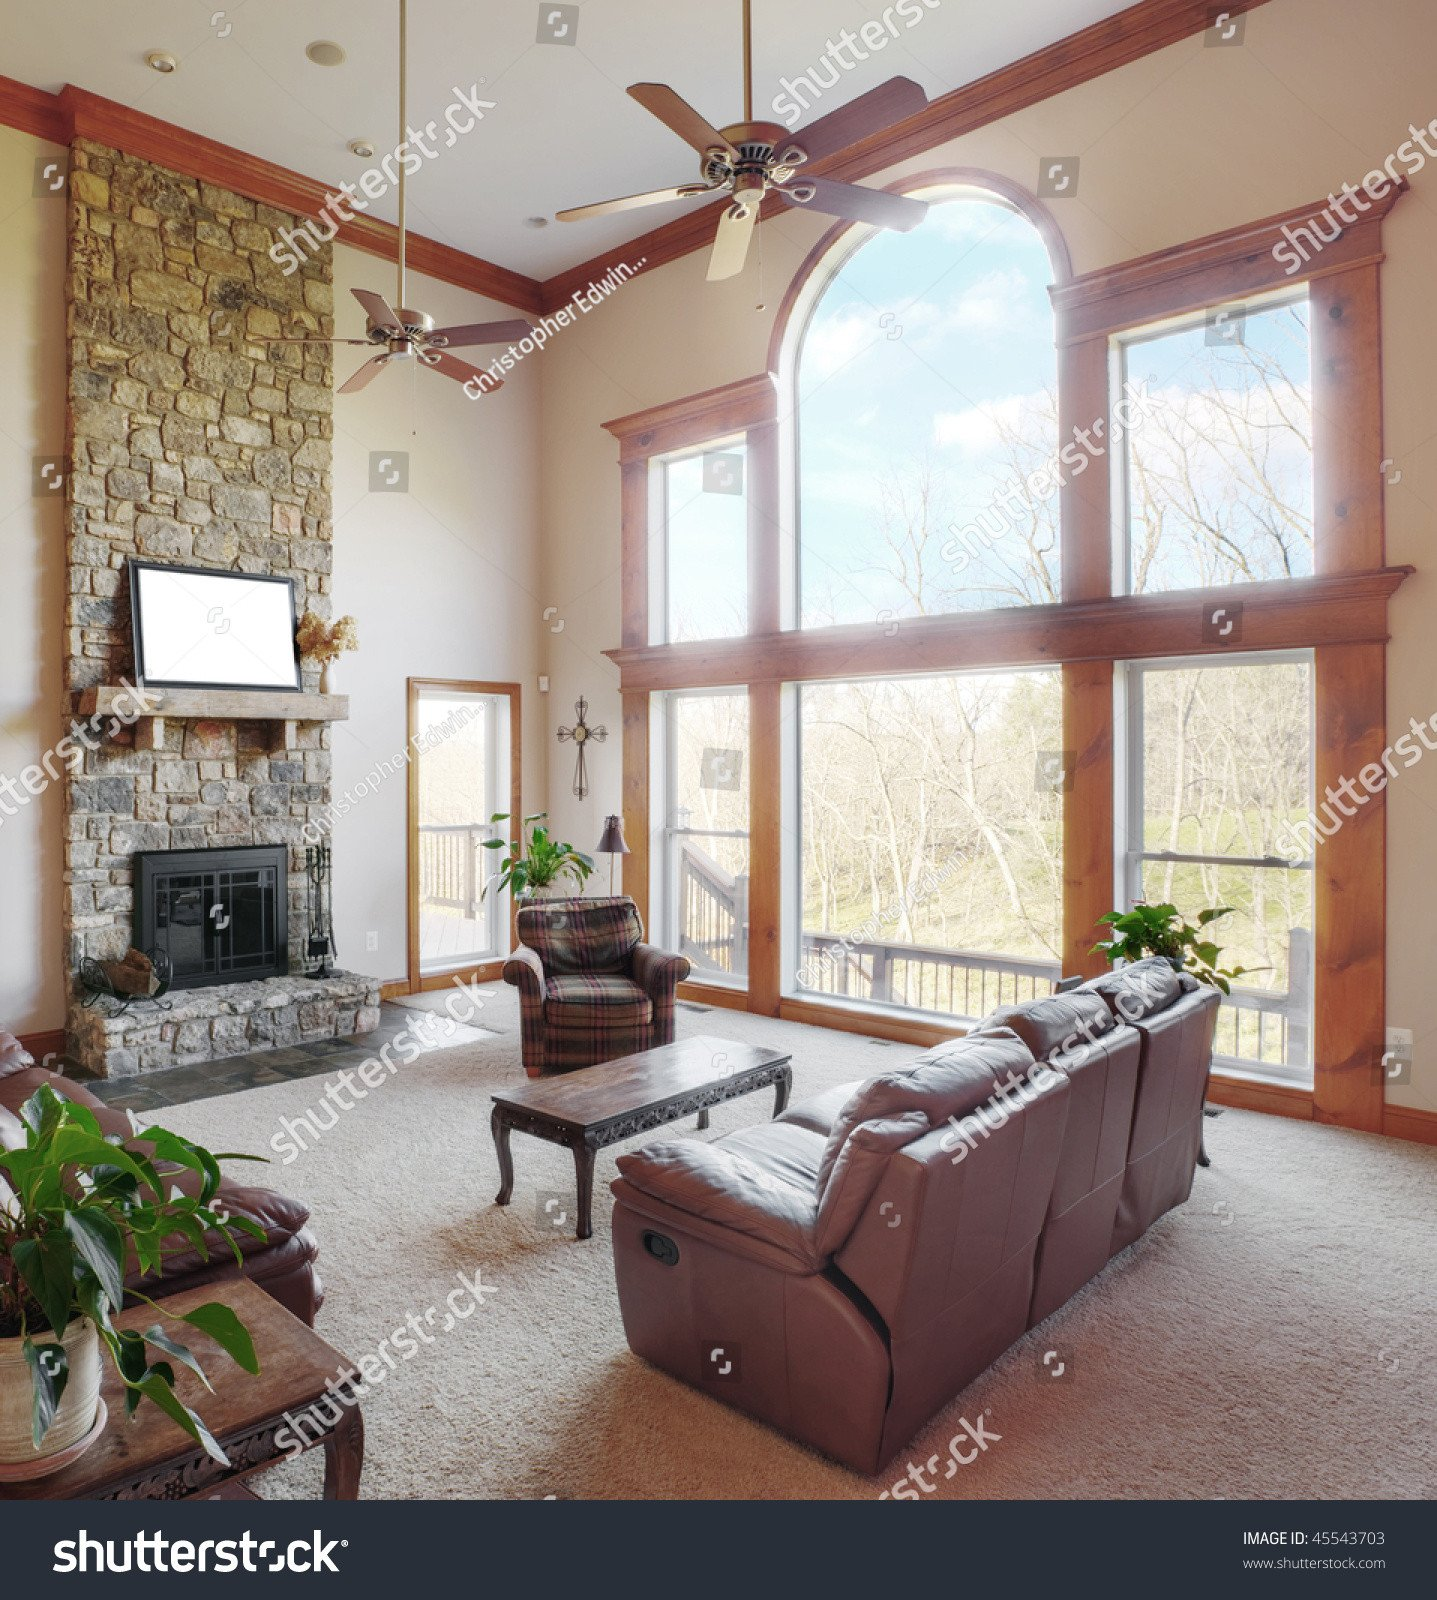 Traditional Living Room Ceiling Traditional Living Room Interior High Ceiling Stock